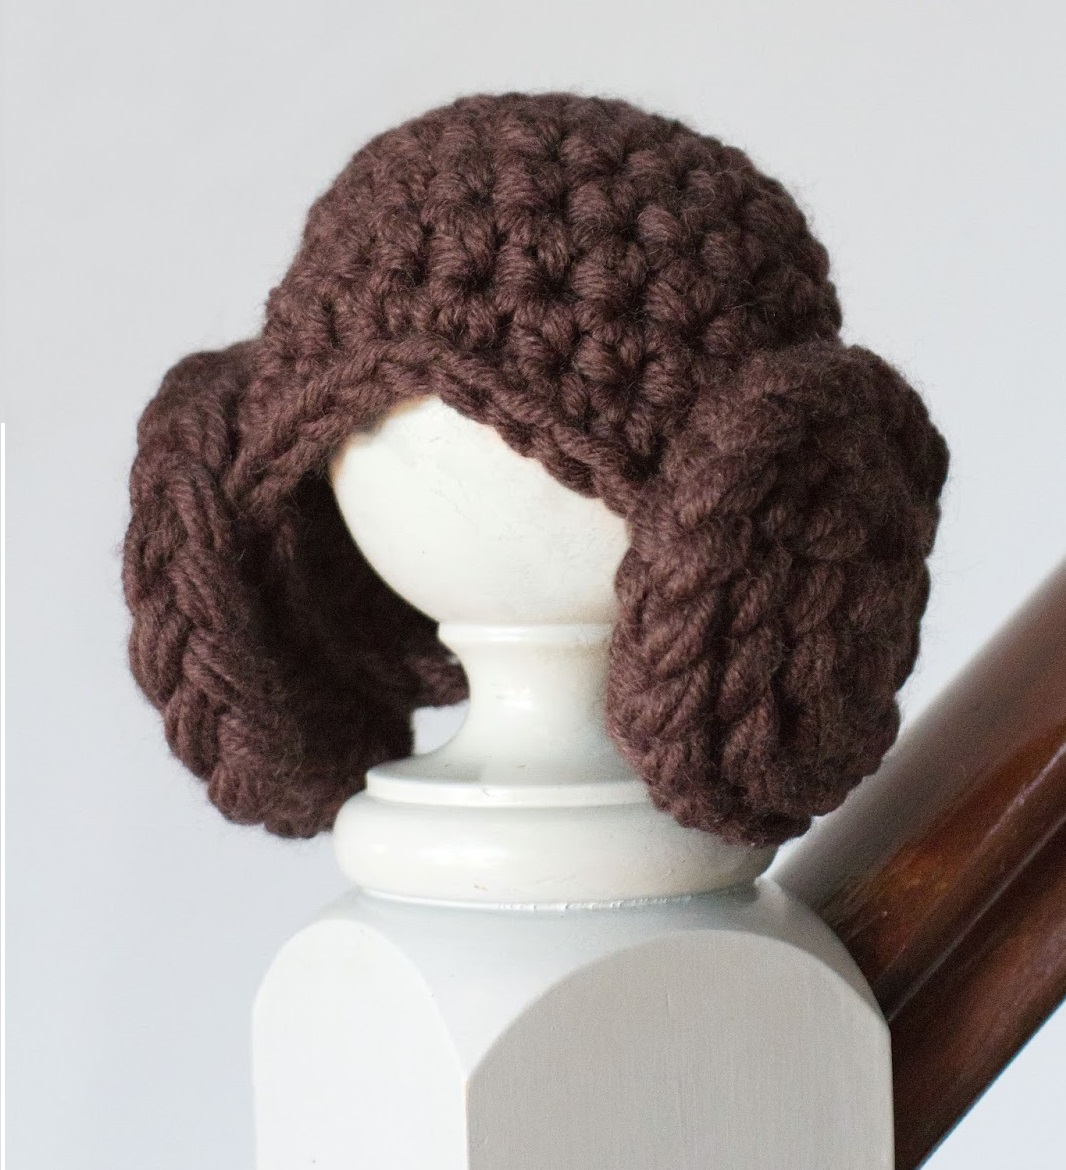 The Star Wars Crochet Patterns Youre Looking For - Stitch ...